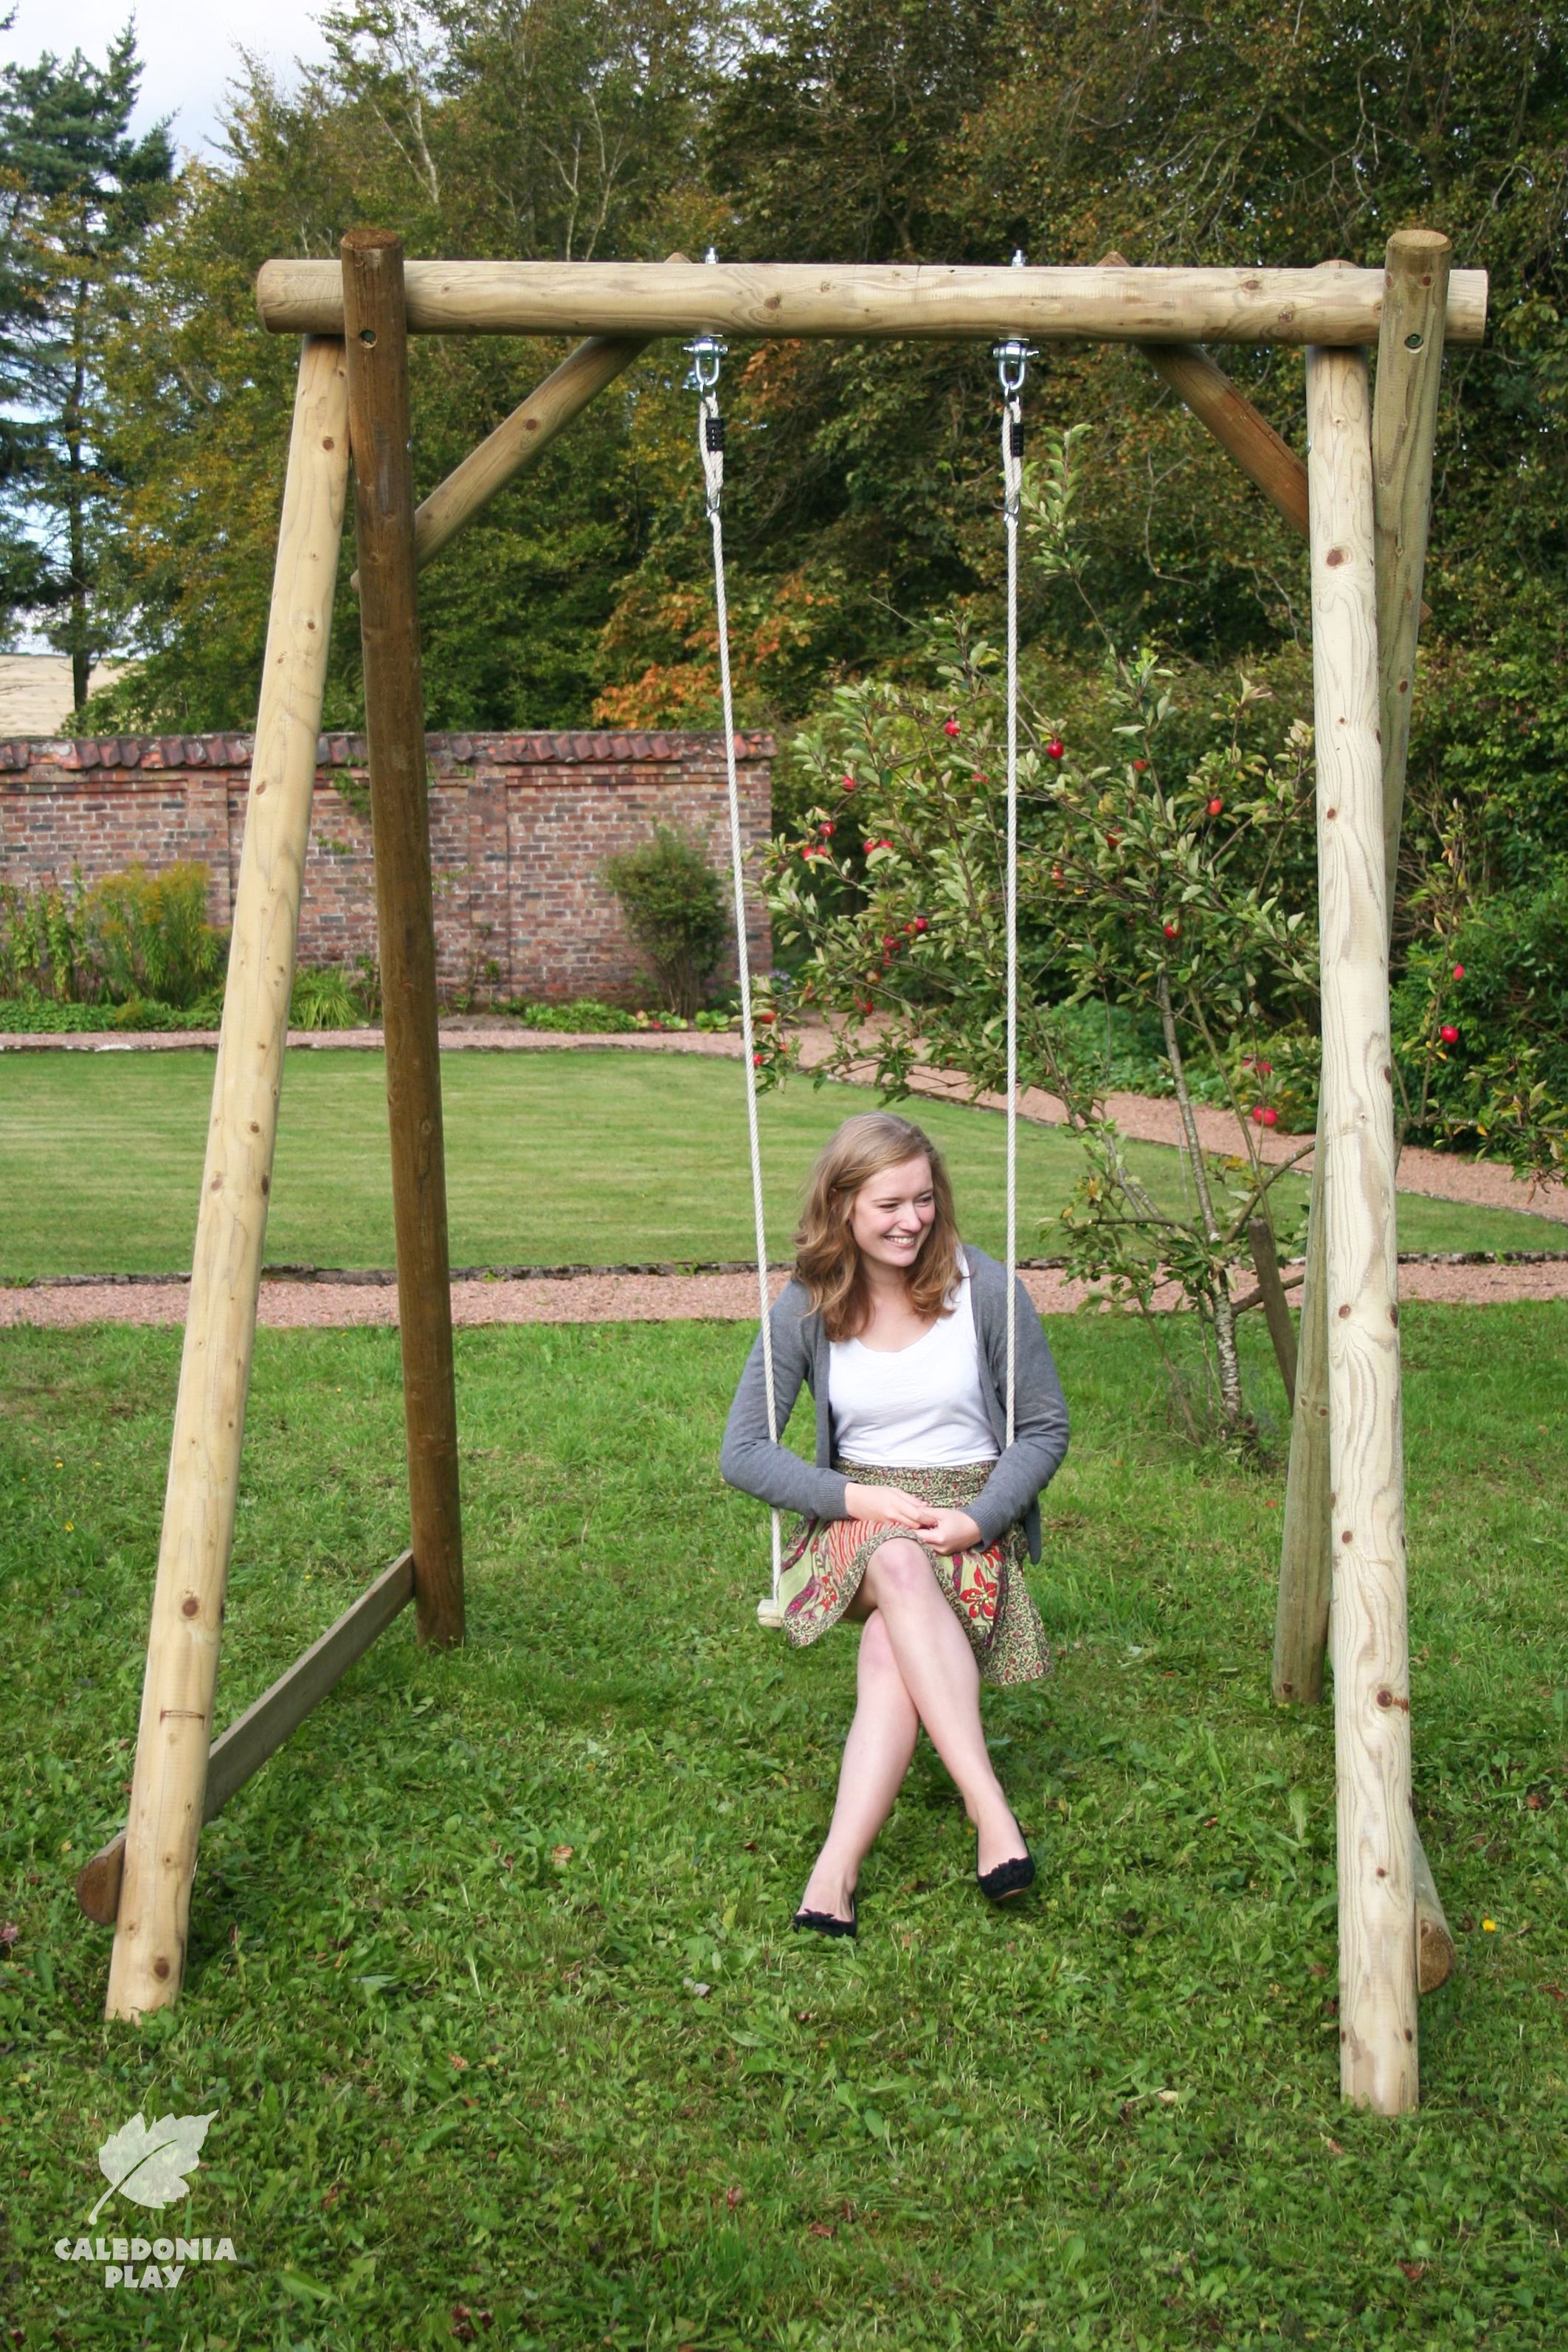 Swing Chair For 5 Year Old Black Ladder Back Chairs With Rush Seats Robust Wooden Frame The Garden Can